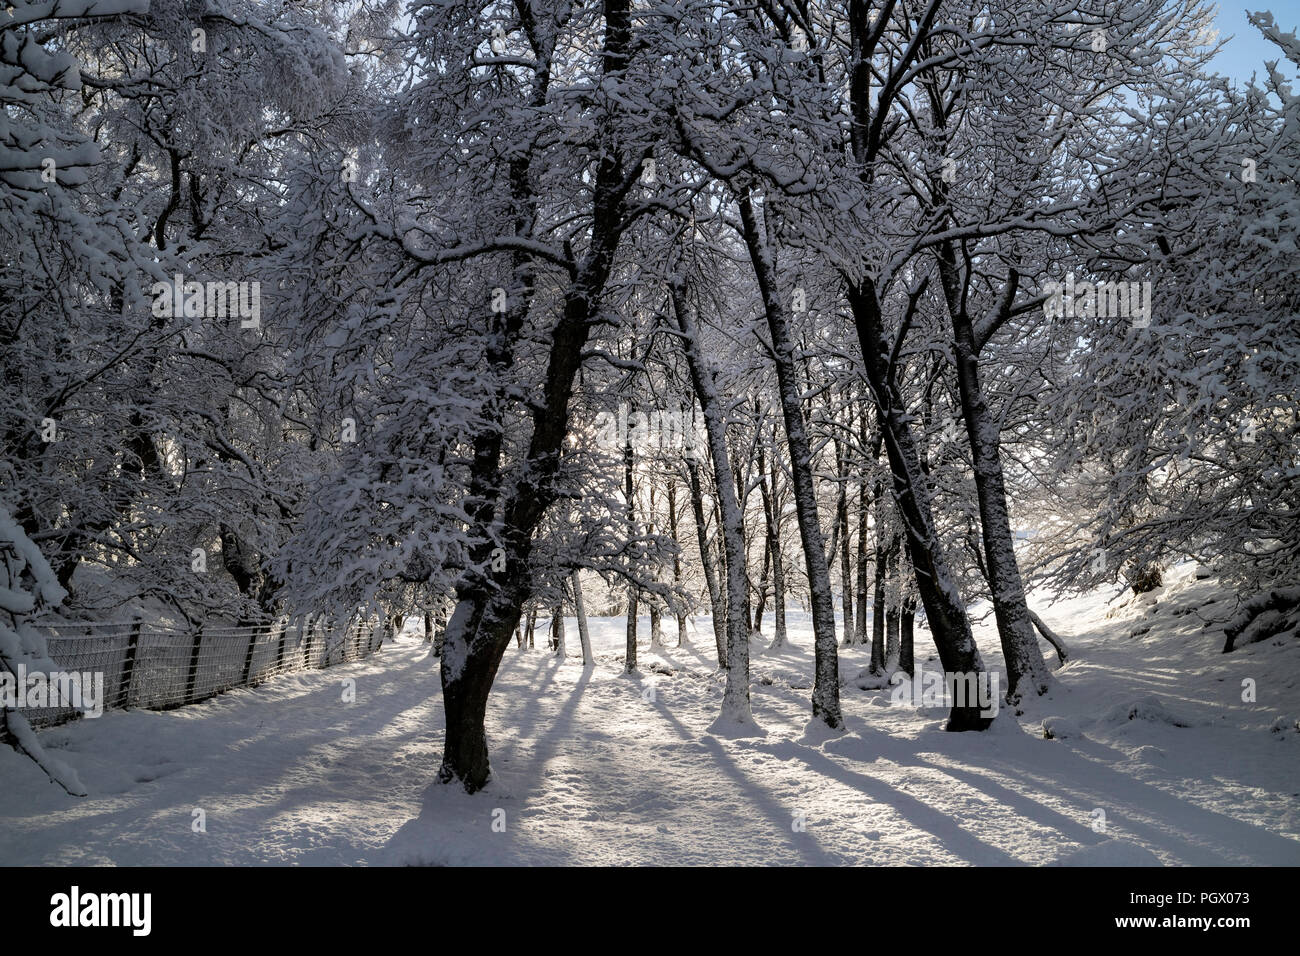 Snow Covered Trees in a North Pennine Woodland, Teesdale, County Durham, UK Stock Photo